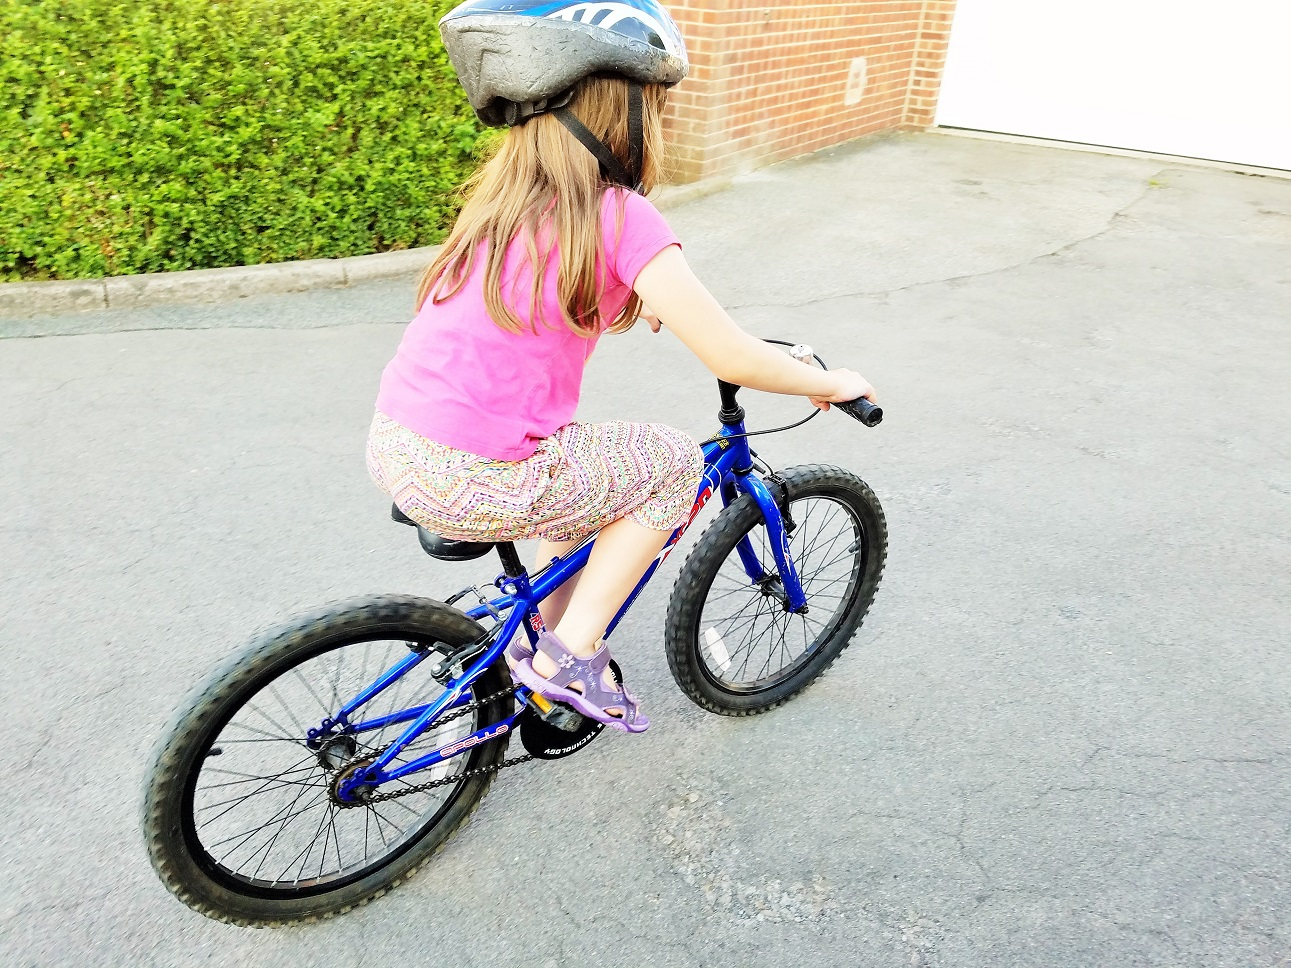 The problem with parenting advice - child riding a bike with helmet on